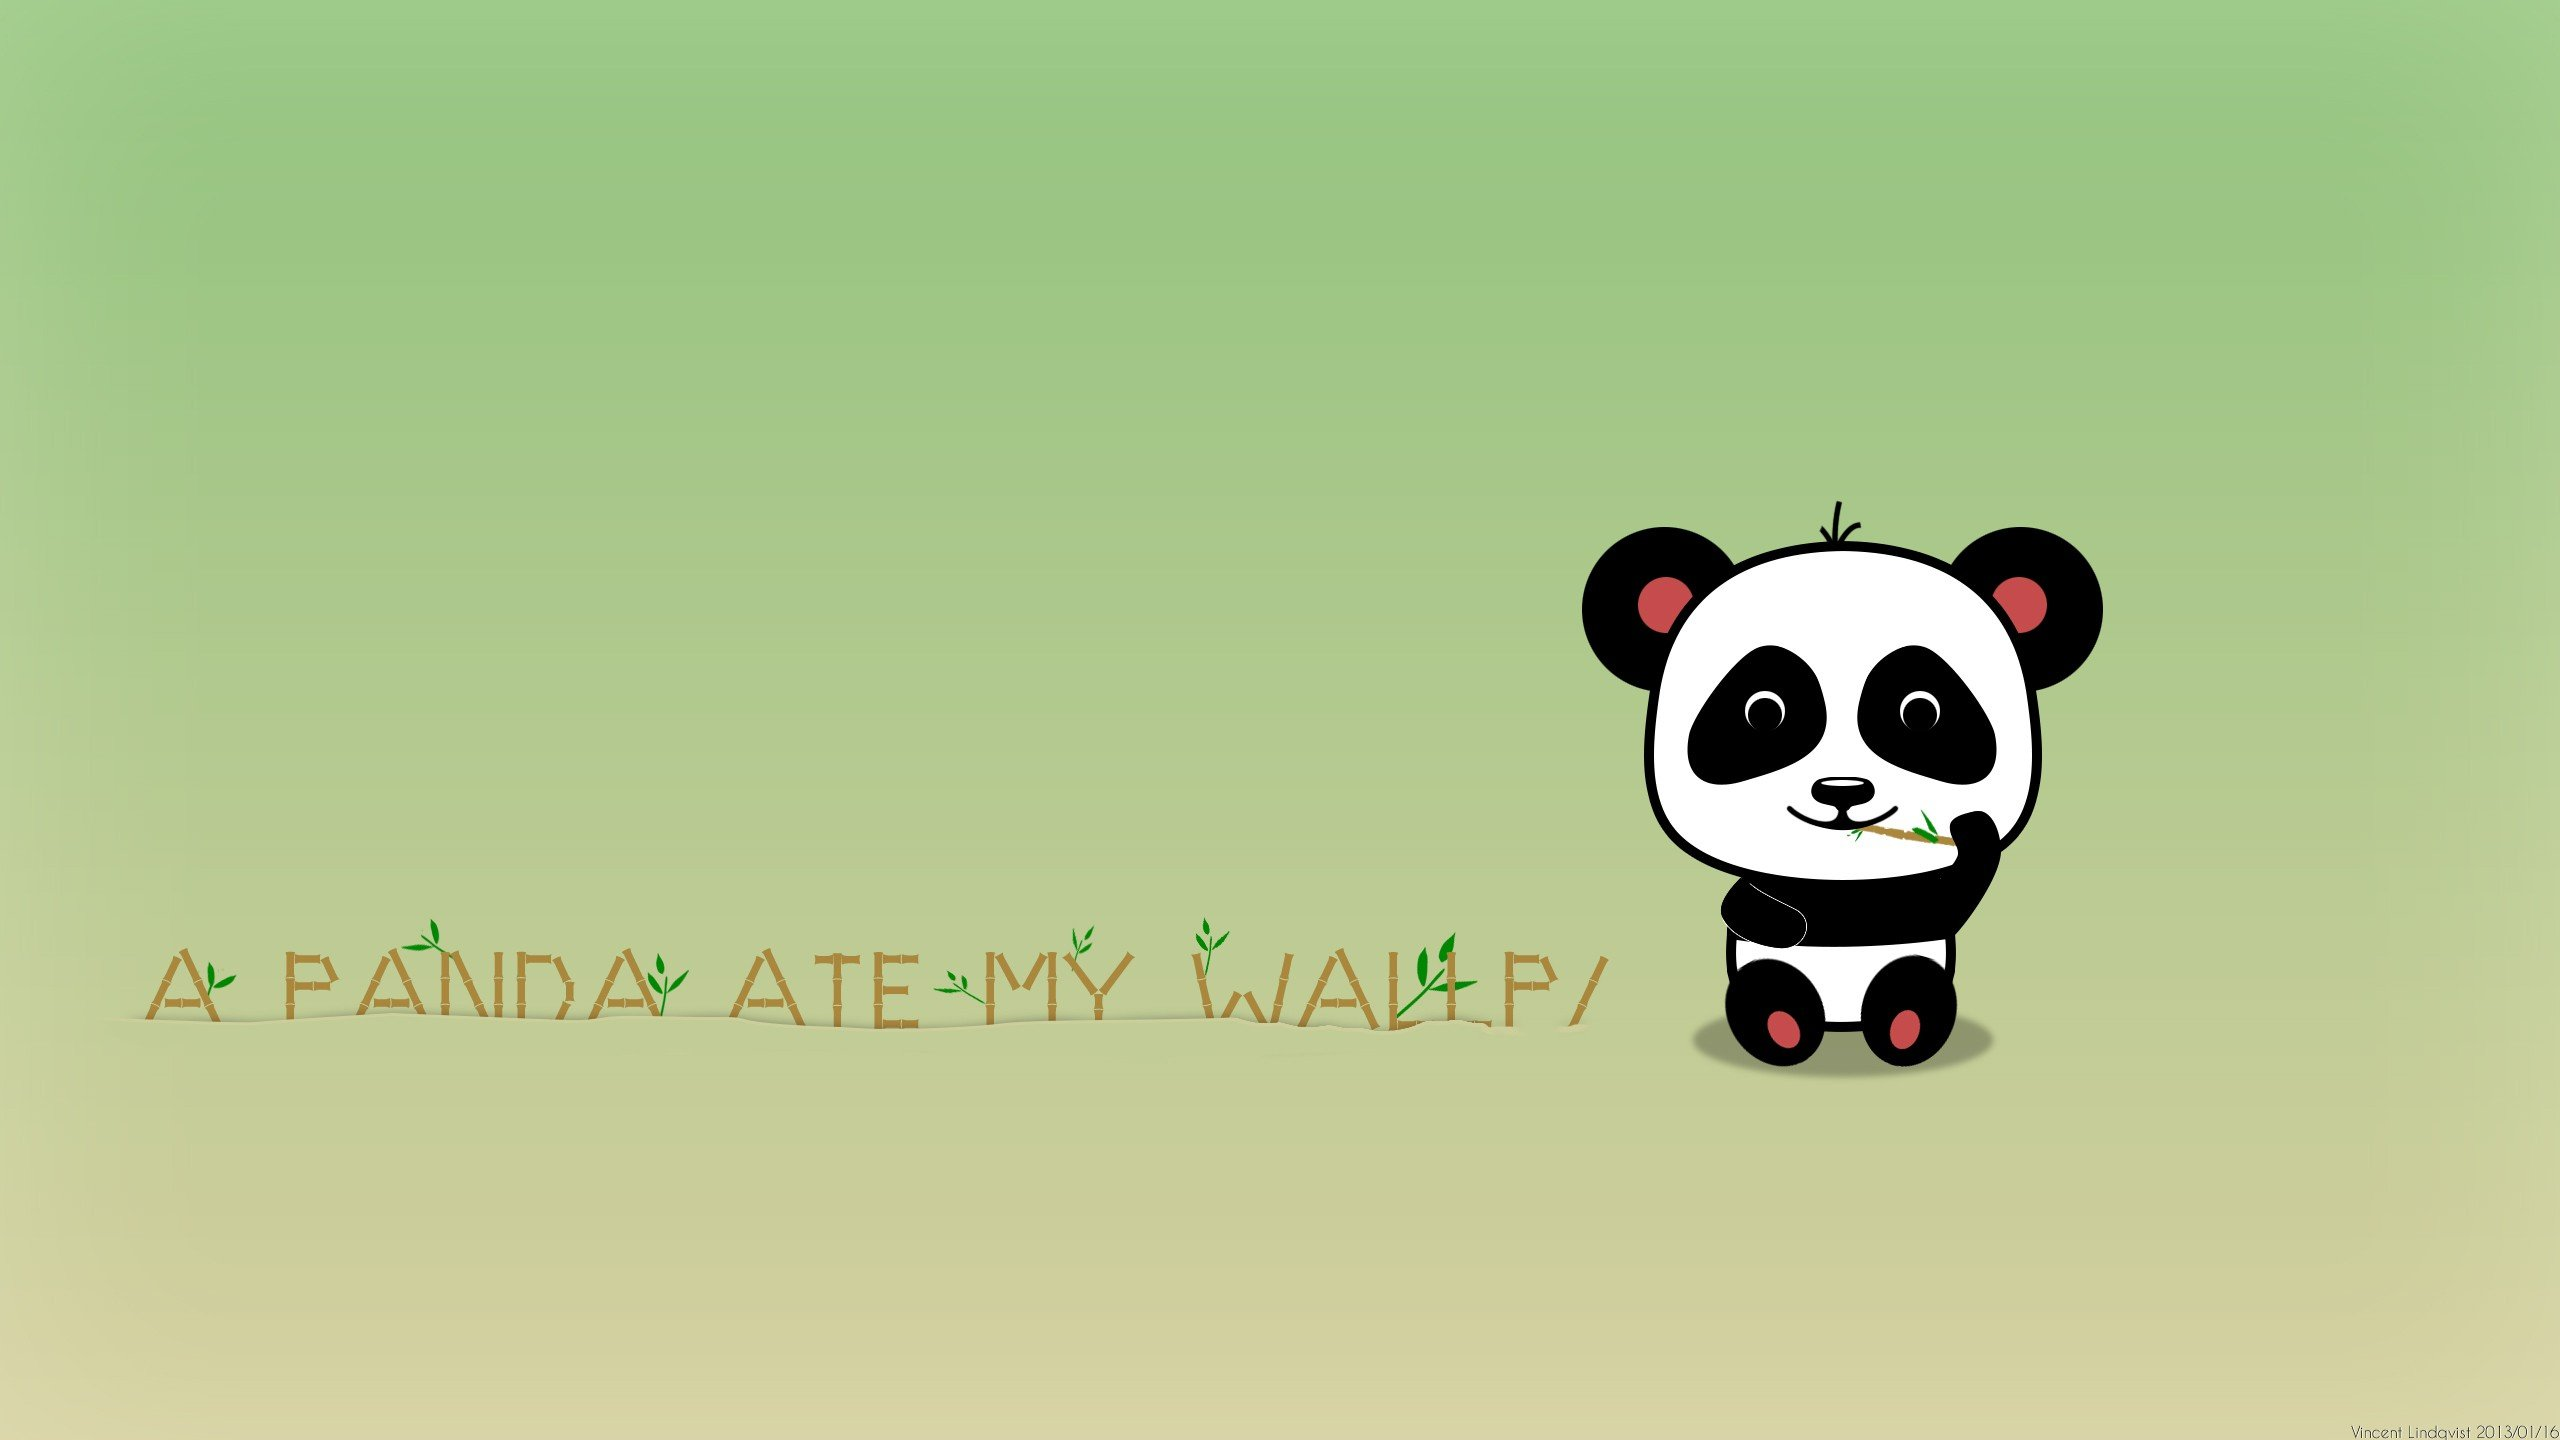 Cute Panda Wallpaper Pictures to pin 2560x1440